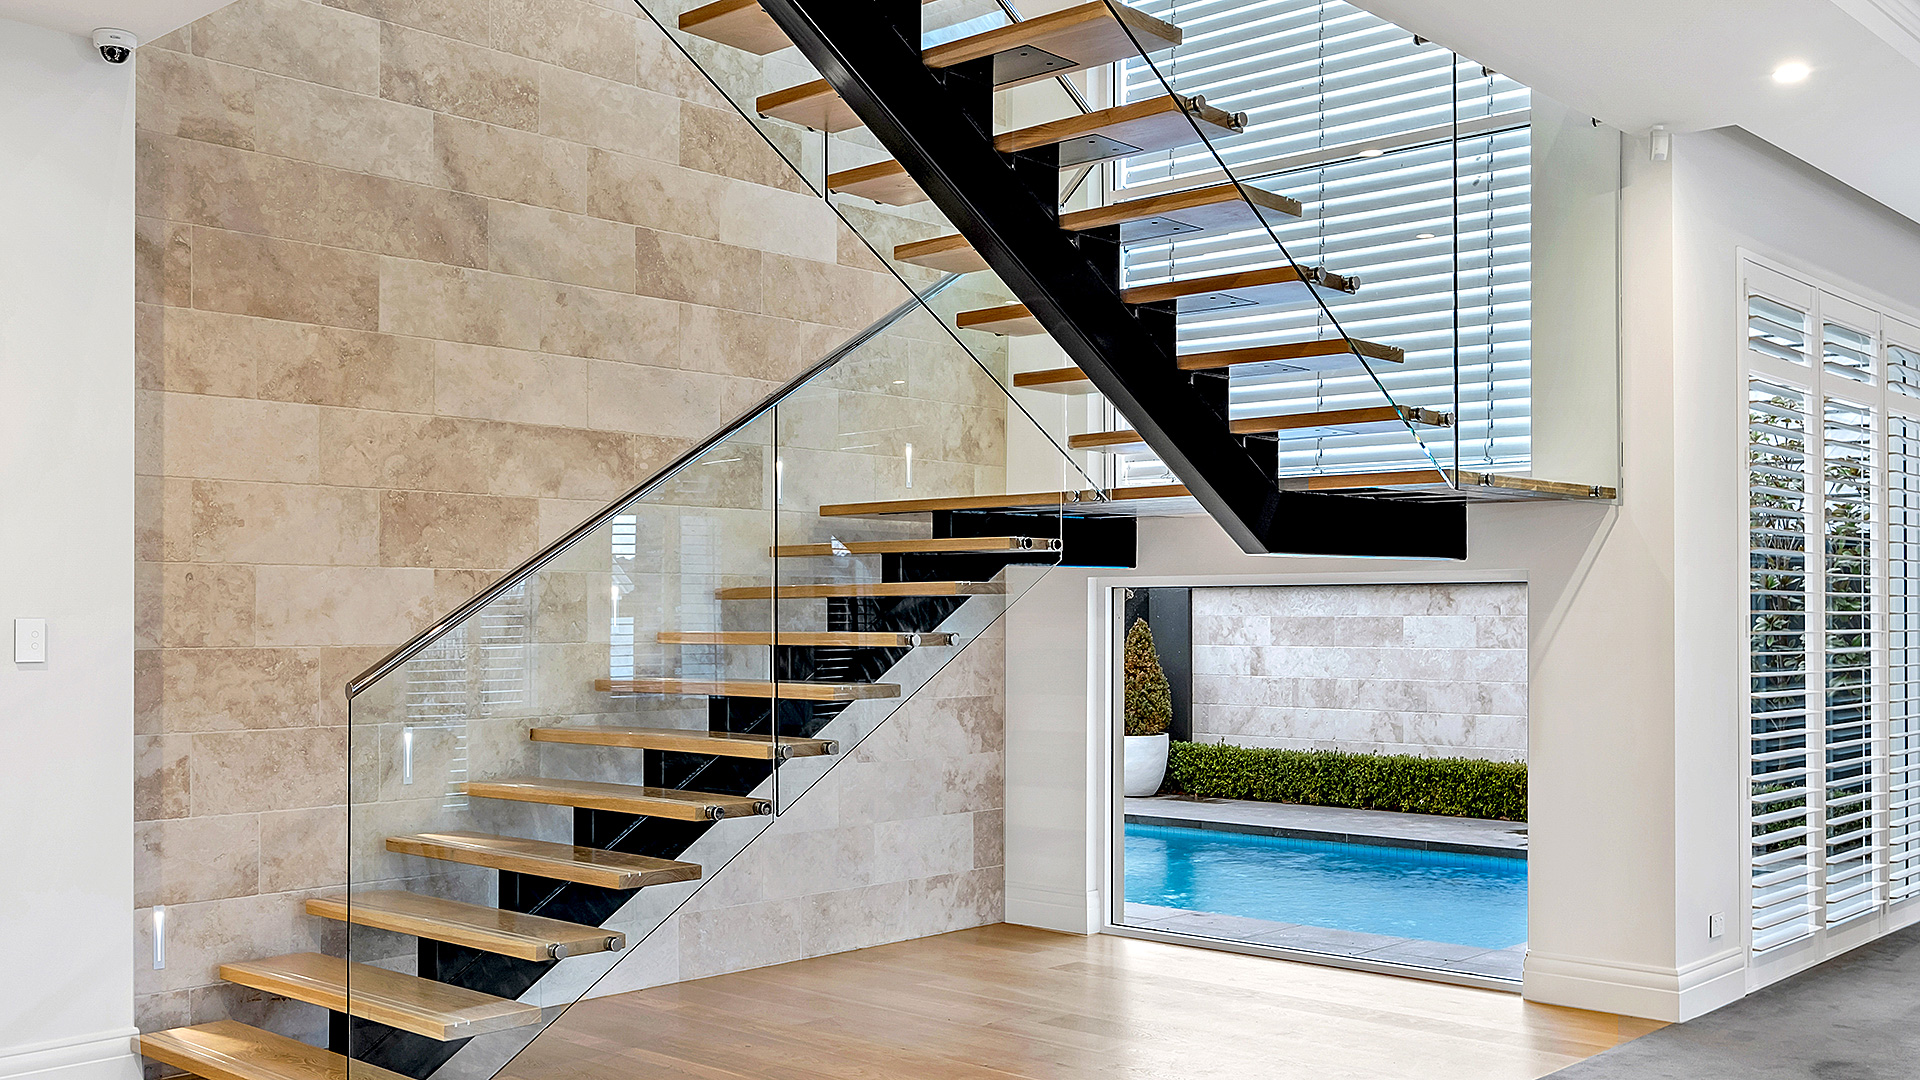 stunning image of the stair case of the grand prize home